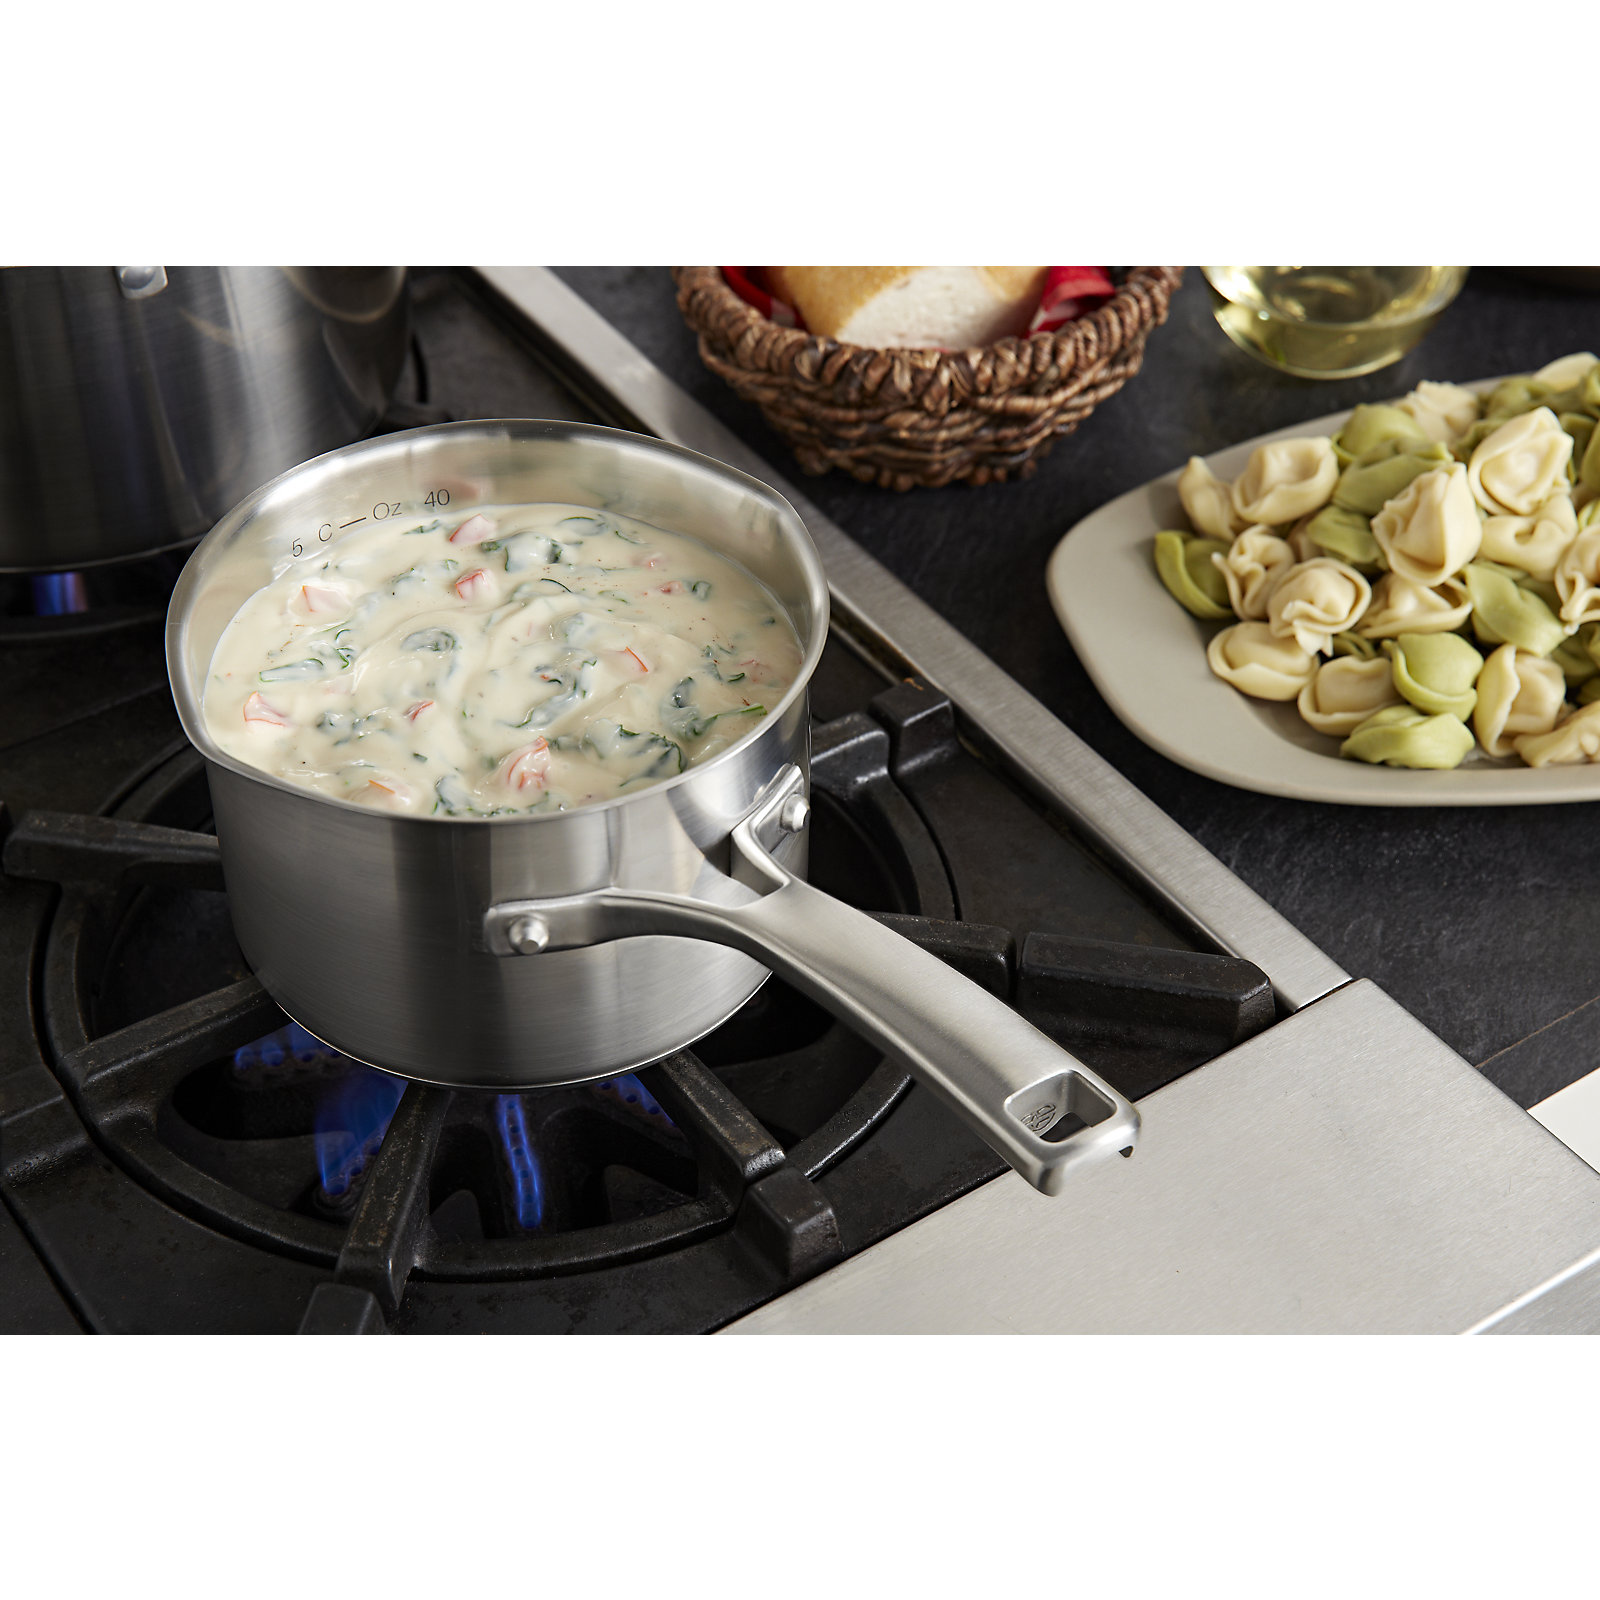 Calphalon Classic Stainless Steel 1.5-qt. Sauce Pan & Cover